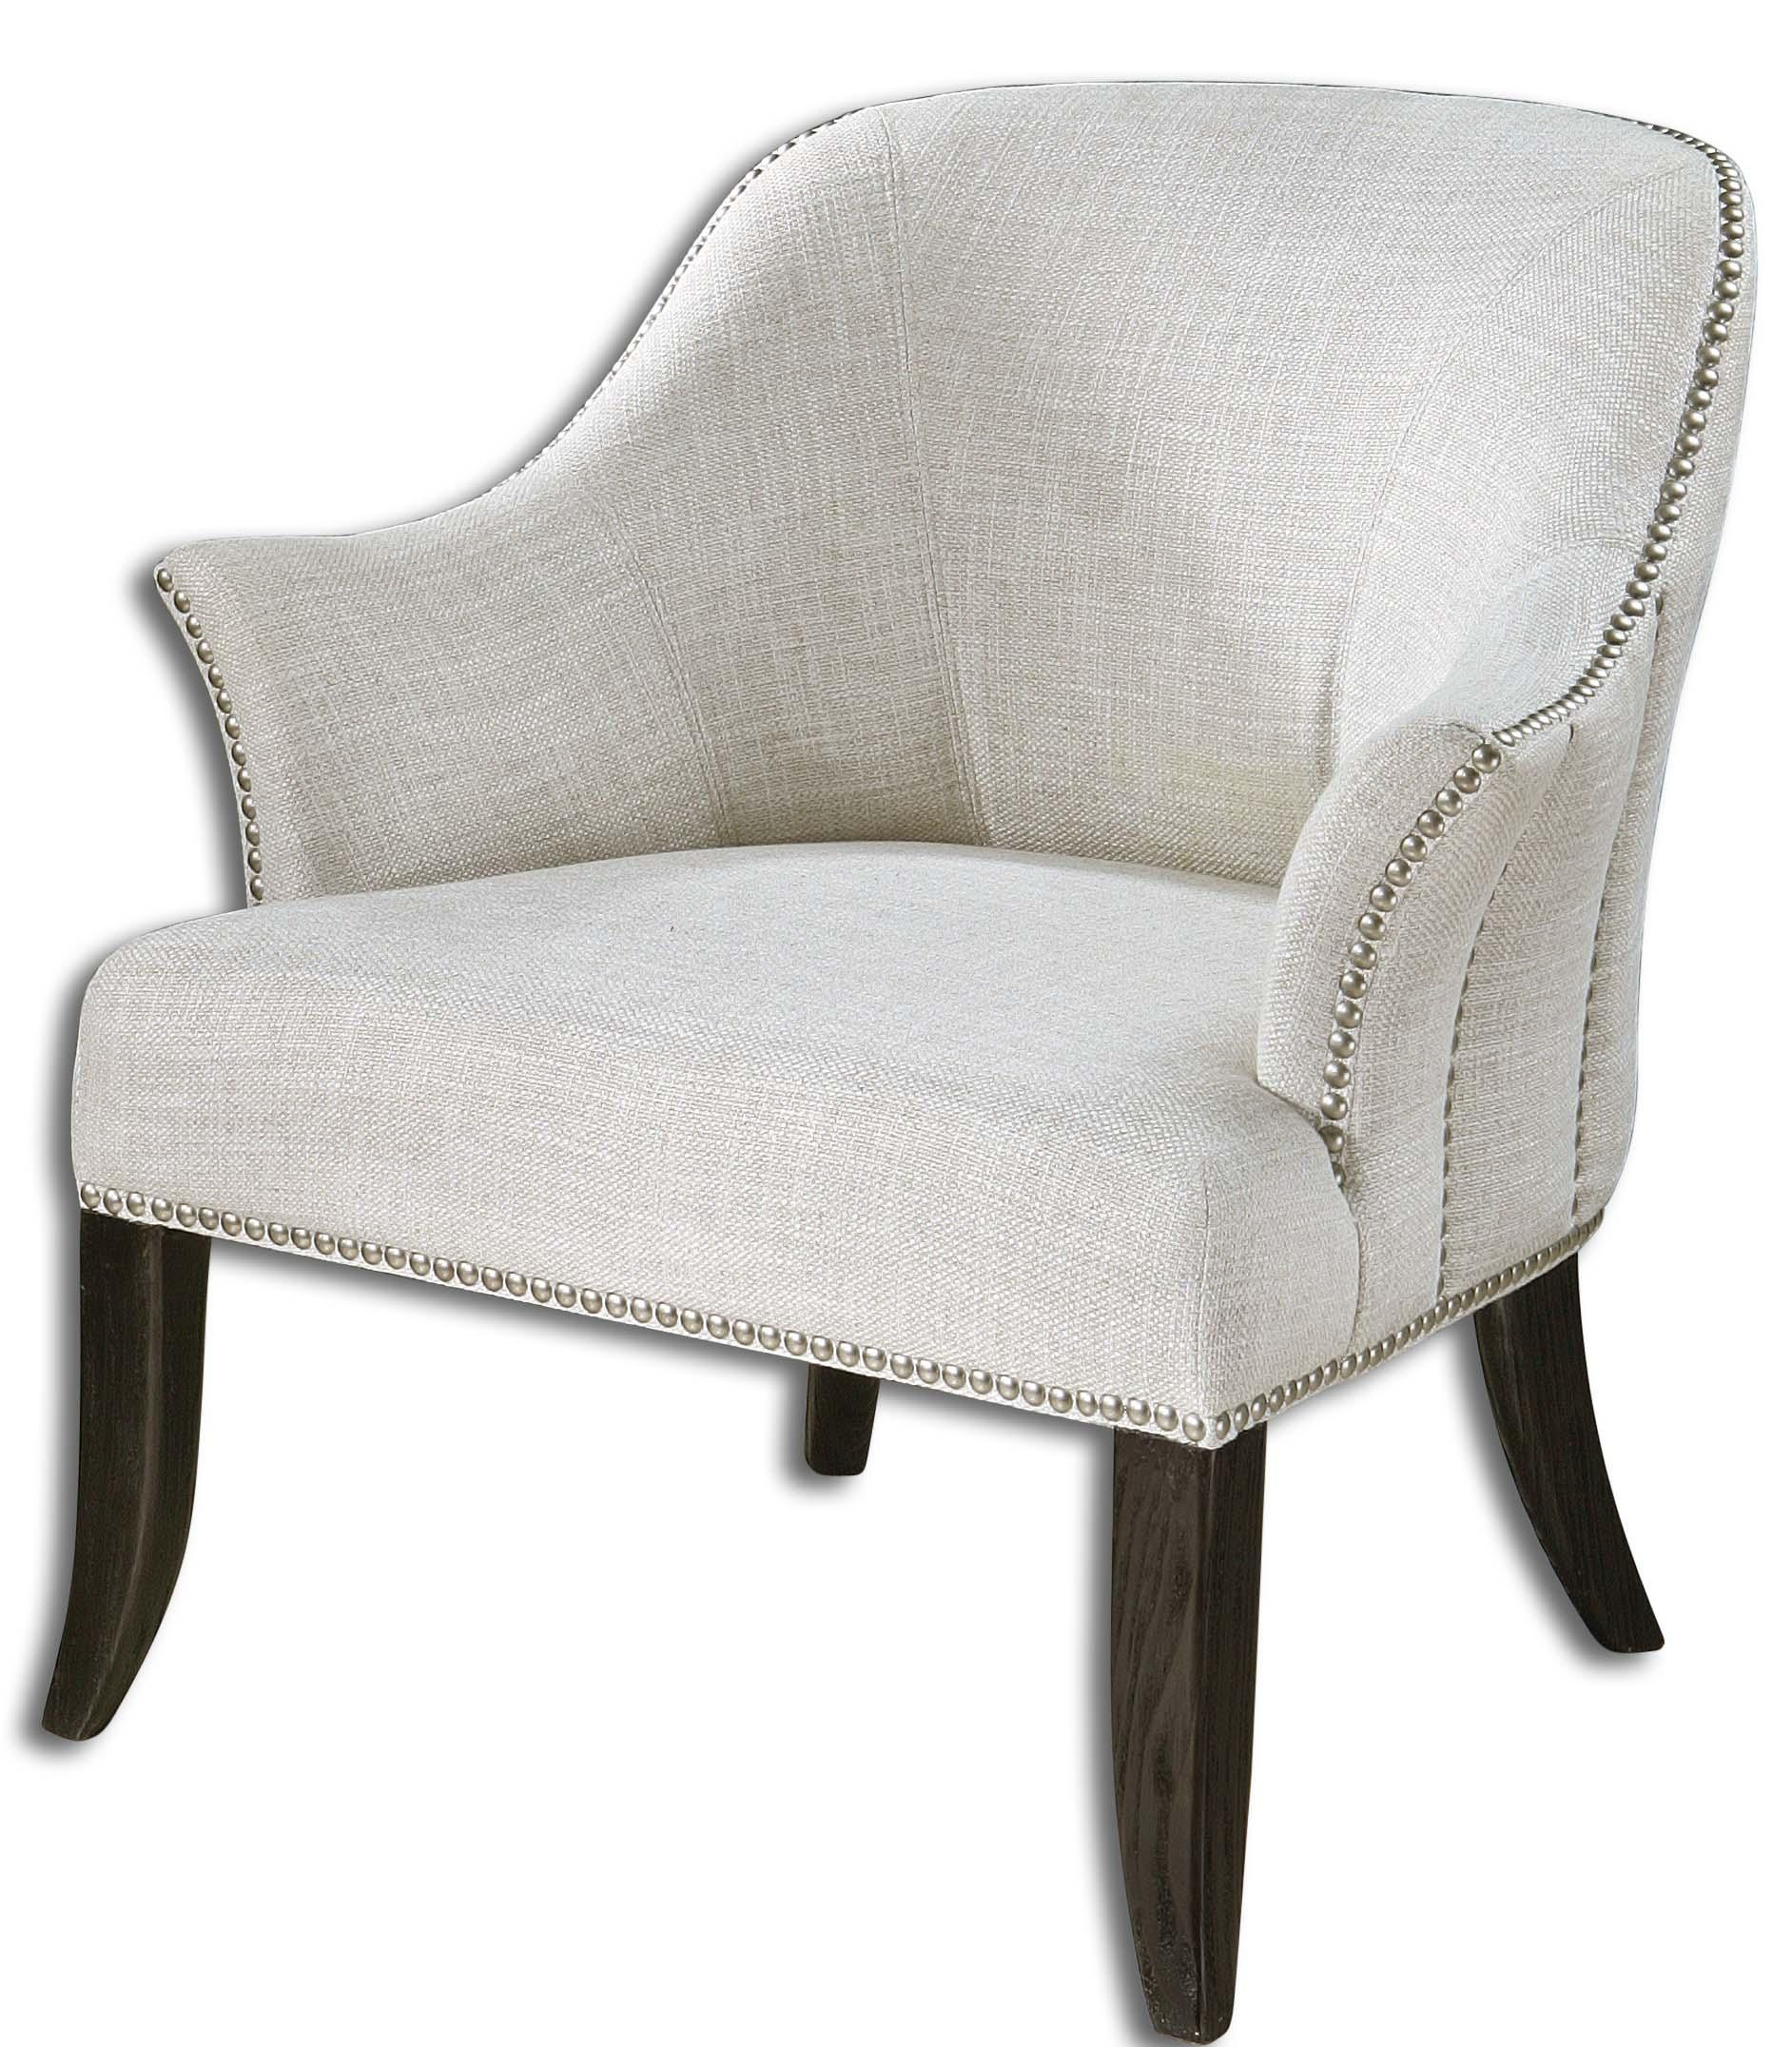 Accent Furniture - Accent Chairs Leisa White ArmChair by Uttermost at Goffena Furniture & Mattress Center